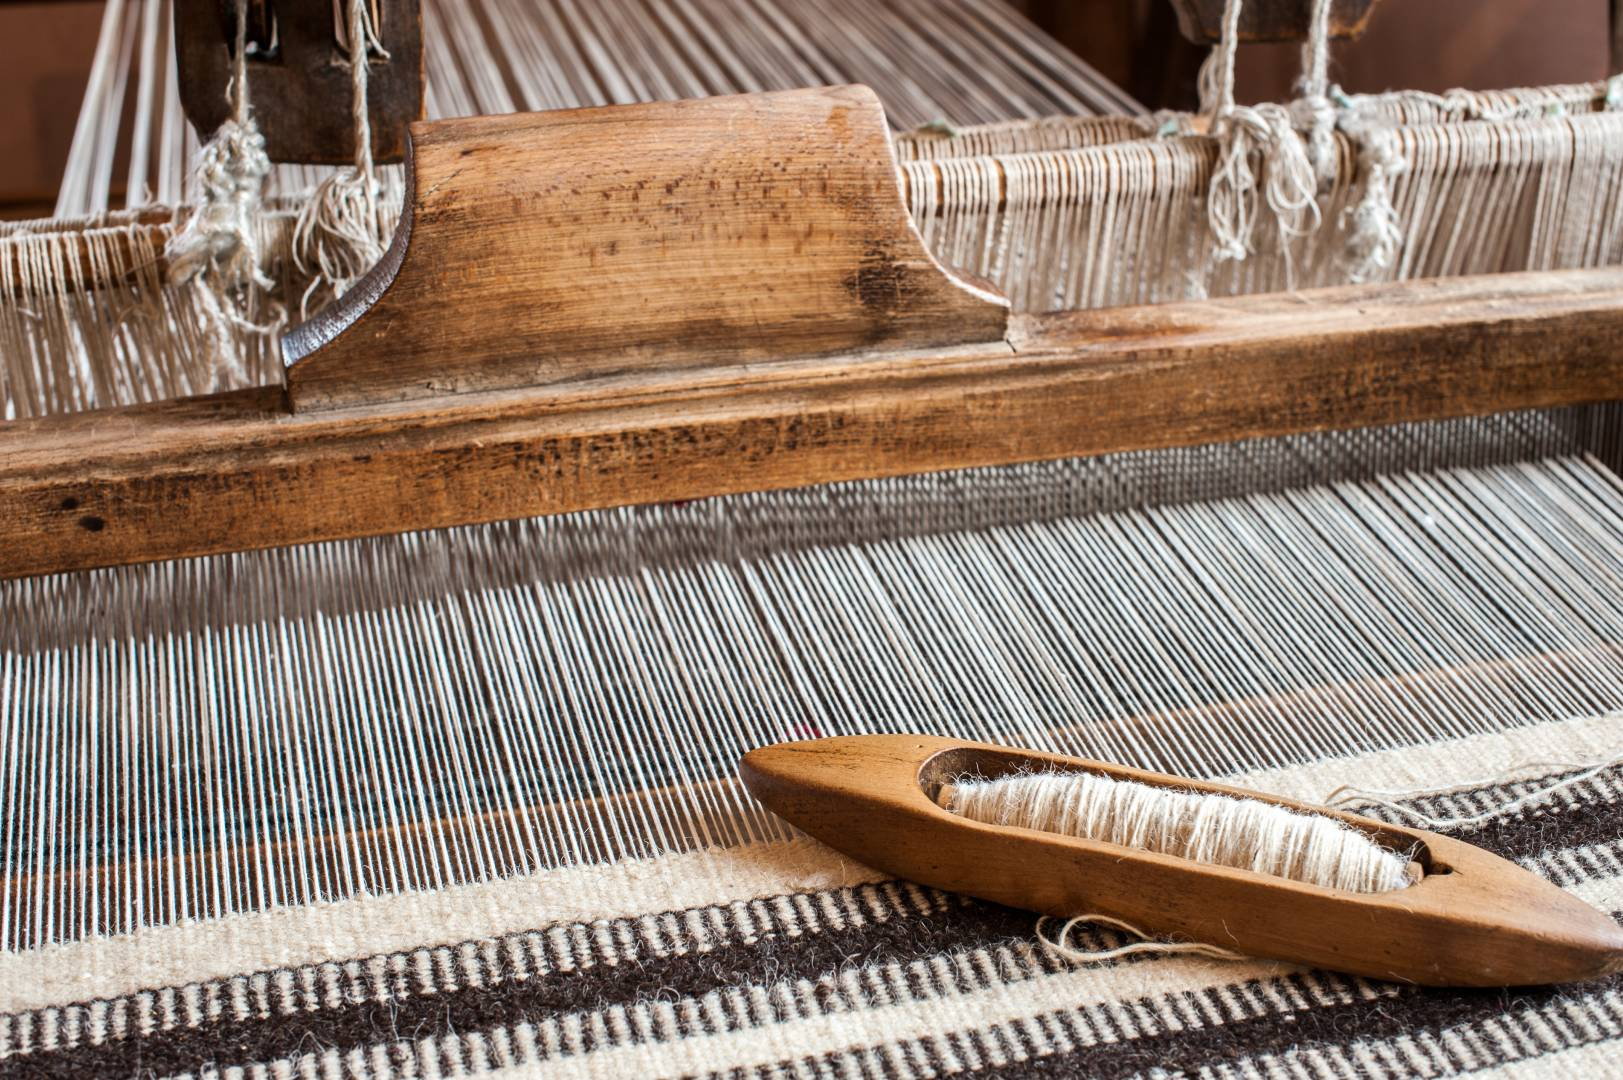 All of the prototypes are currently being handmade by Thompson on standard weaving looms.